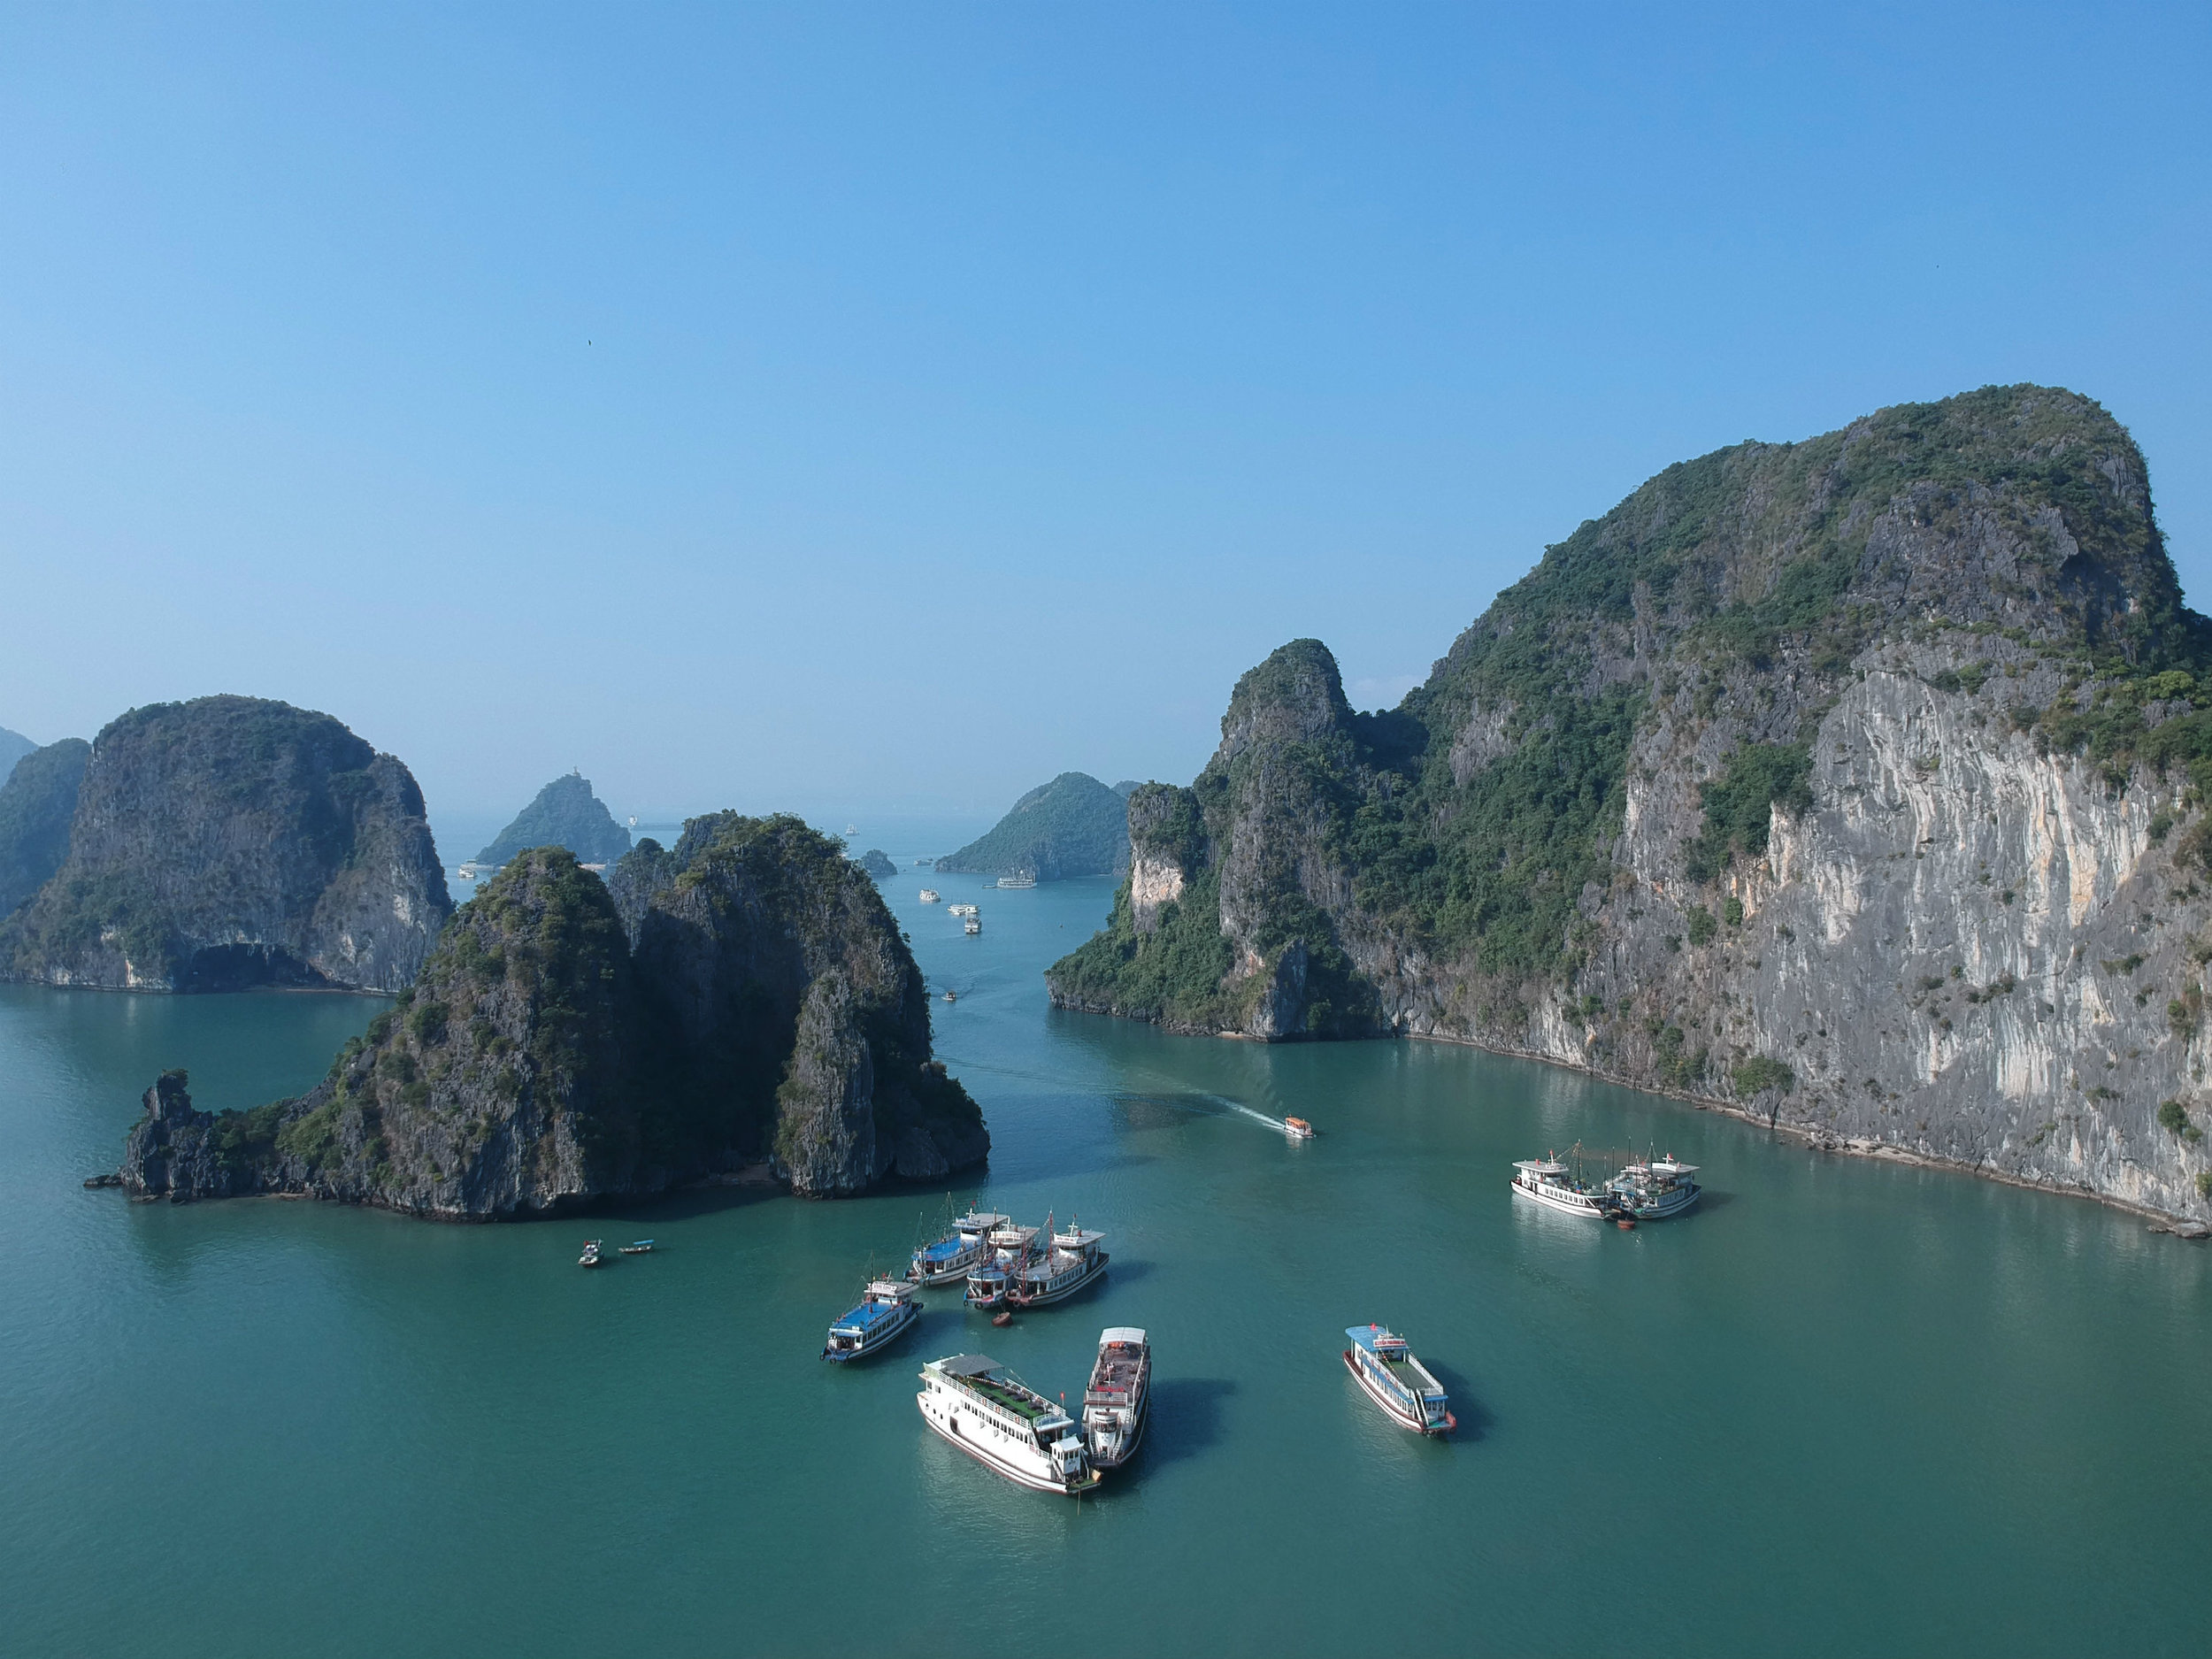 Karst formations of Ha Long Bay (drone picture)